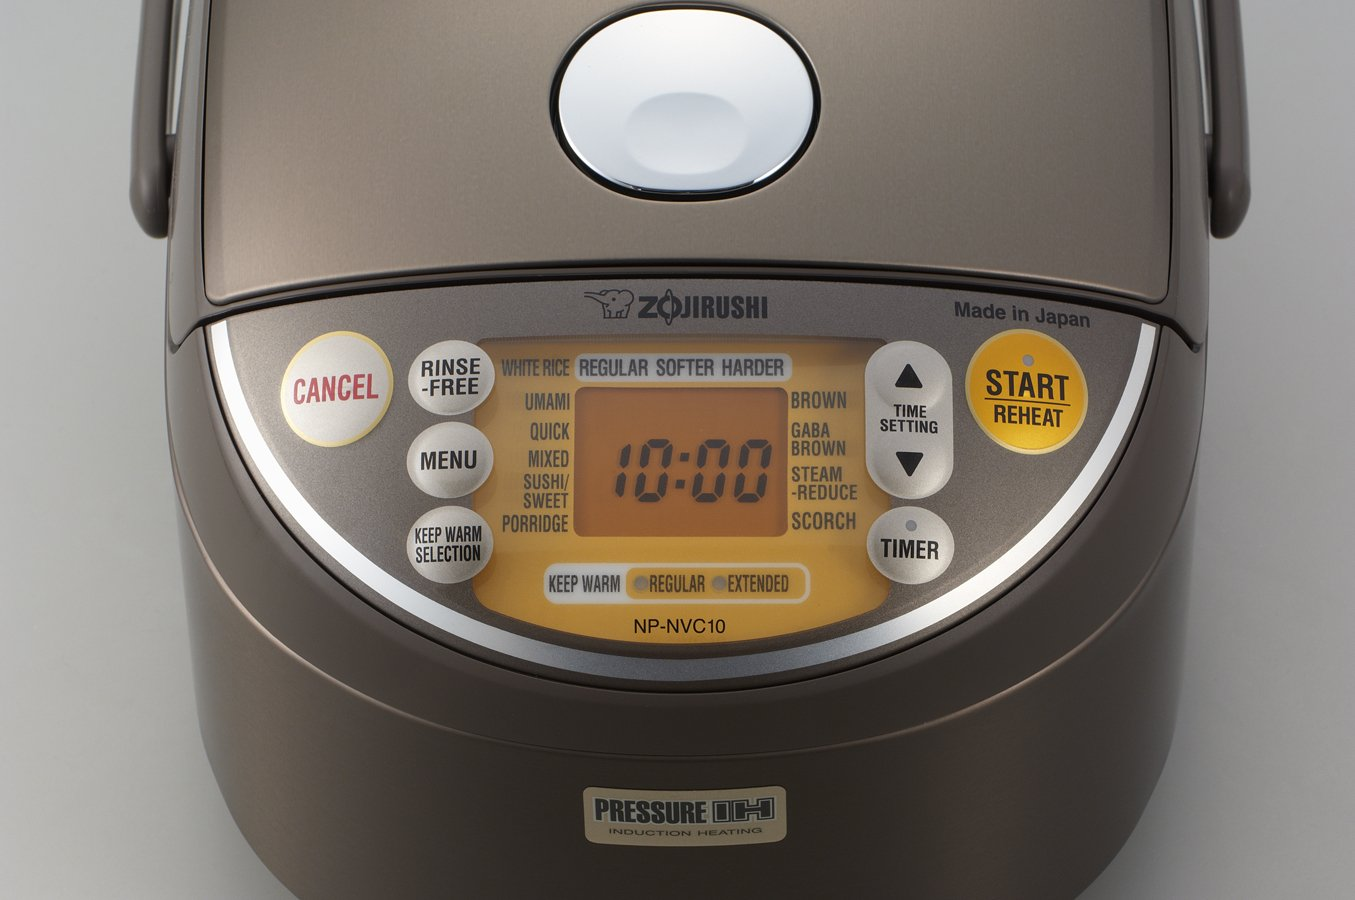 Zojirushi Induction Heating Pressure Rice Cooker & Warmer 1.0 Liter, Stainless Brown NP-NVC10 by Zojirushi